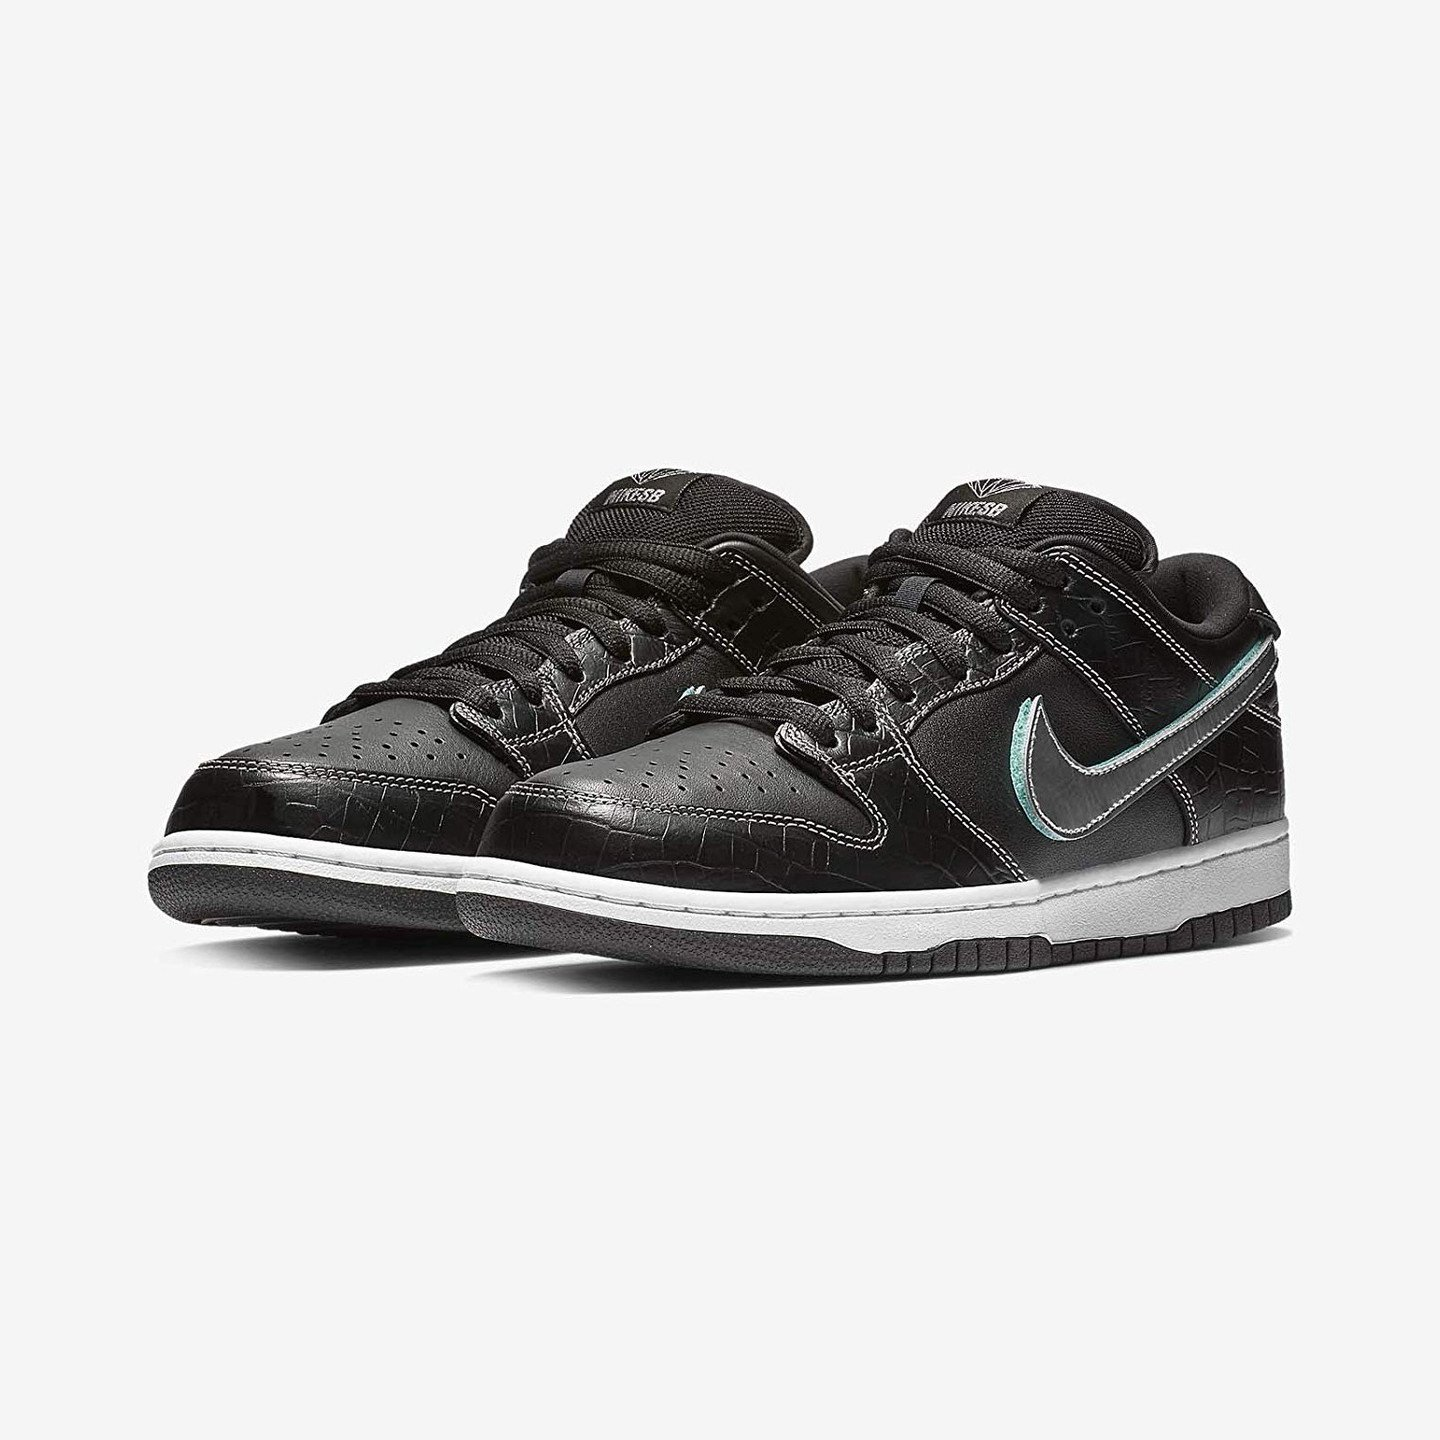 Nike SB Dunk Low Pro OG 'Tiffany' Black / Chrome / Tropical Twist BV1310-001